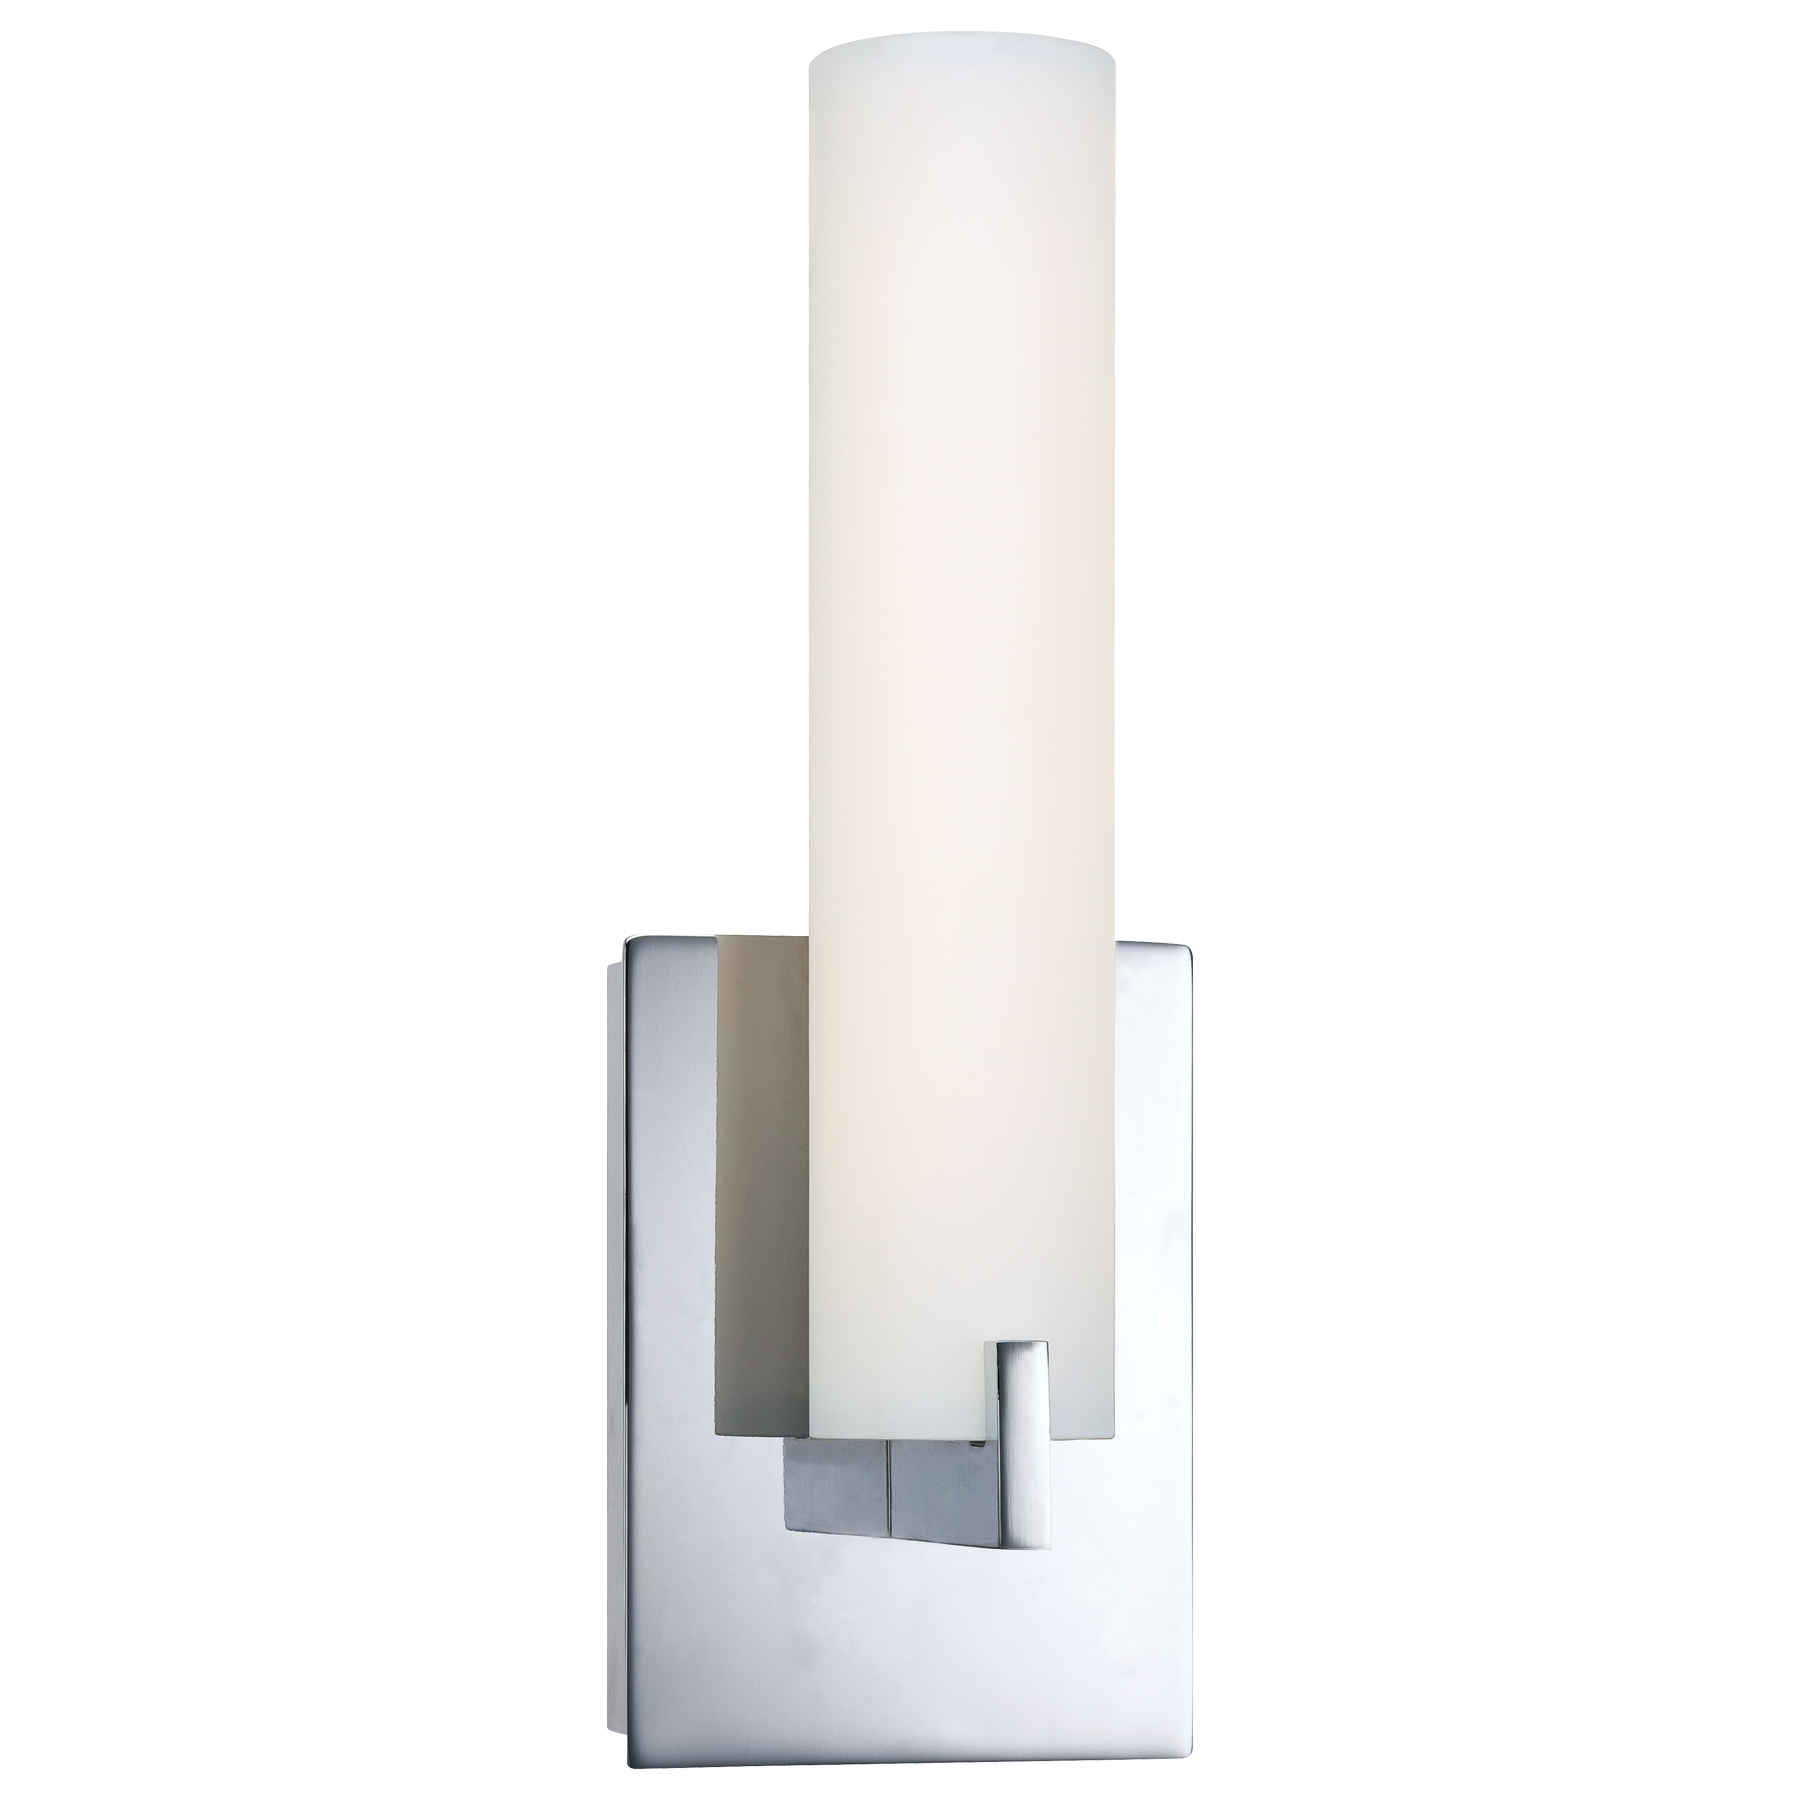 Wall Sconces For Baby Room : Tube LED Vanity Wall Sconce by George Kovacs P5040-077-L